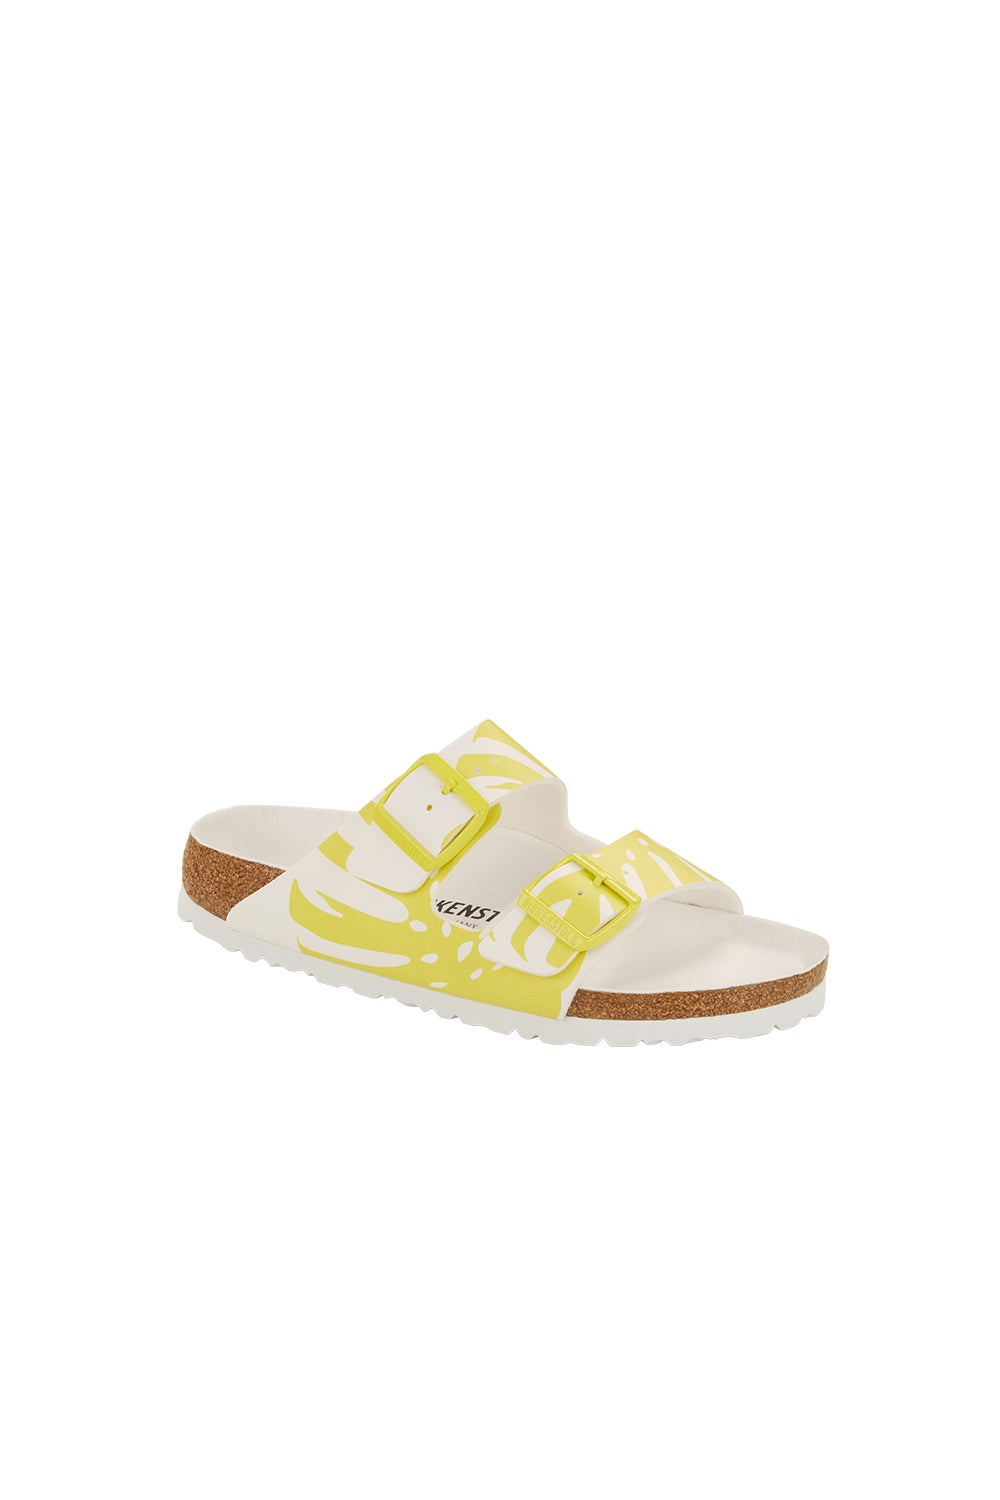 Birkenstock Arizona Birko-Flor Split Monstera White/Lime Sour